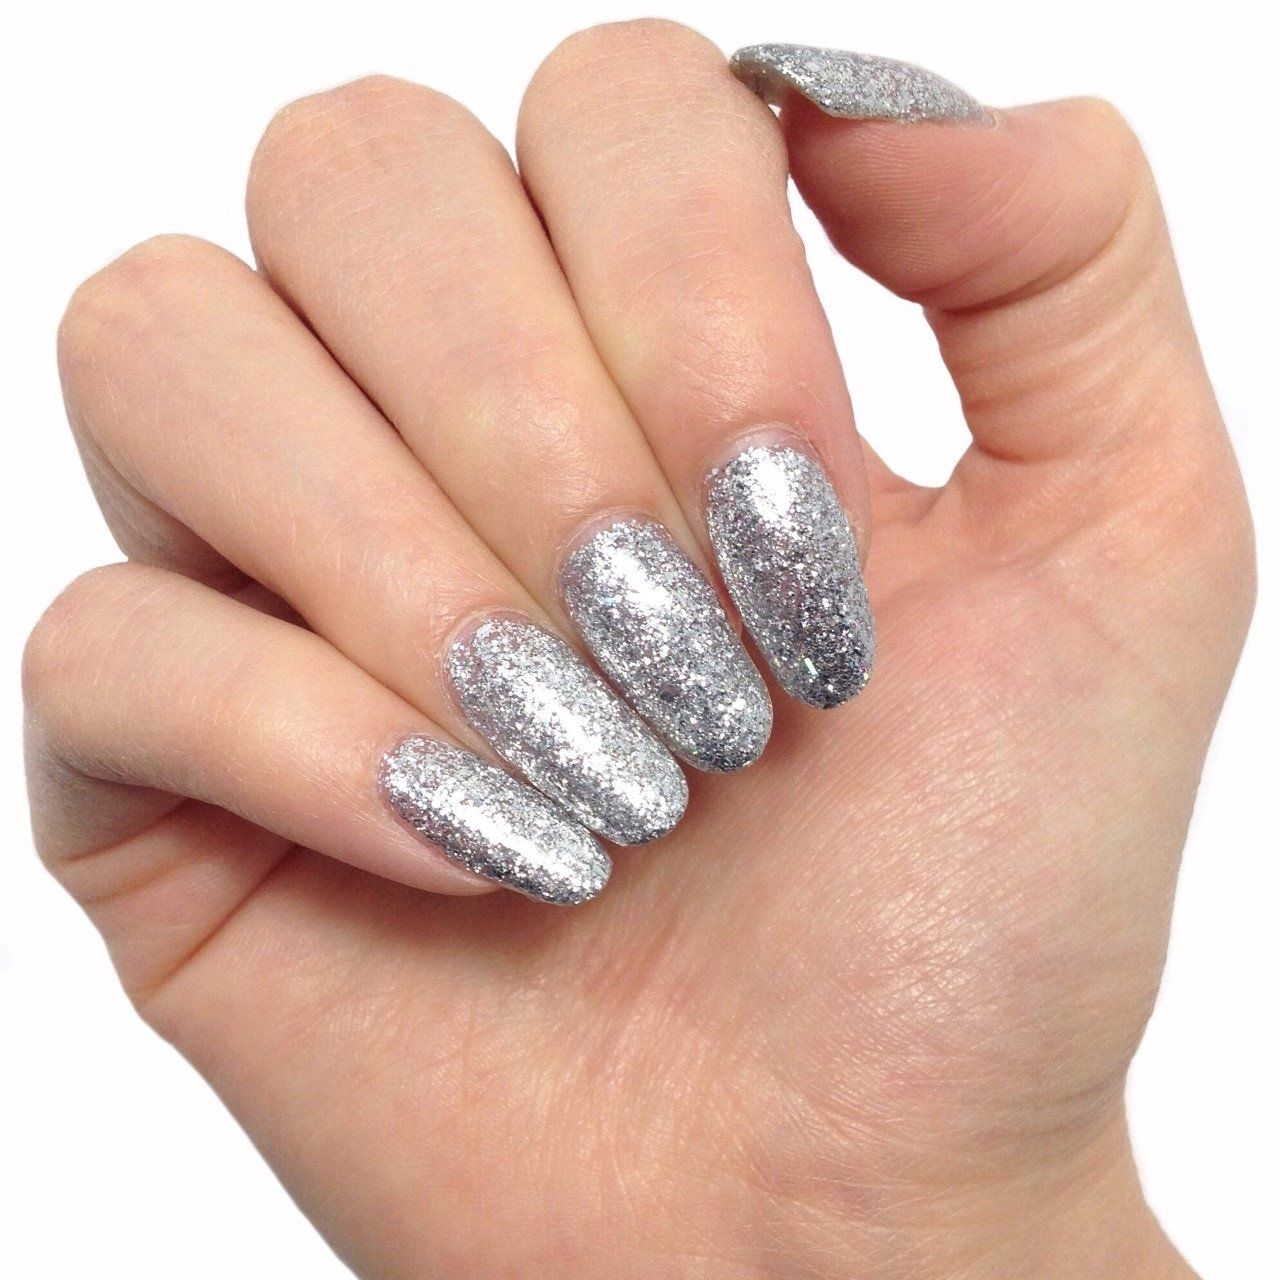 Bluesky LUXURY SILVER Sparkly Glitter UV/LED Soak Off Gel Nail Polish - KD32 - Bluesky Nail Gel Polish